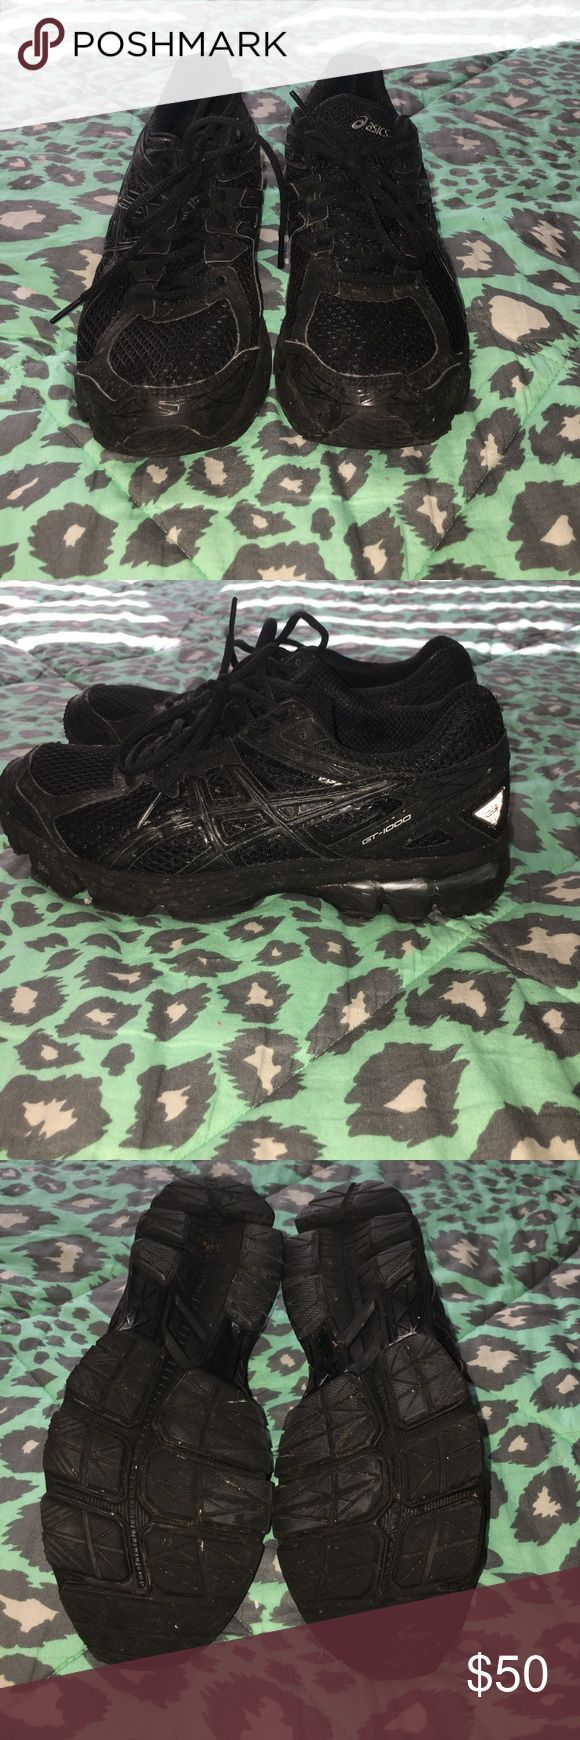 All black Asics Good condition little dirty from use Asics Shoes Athletic Shoes